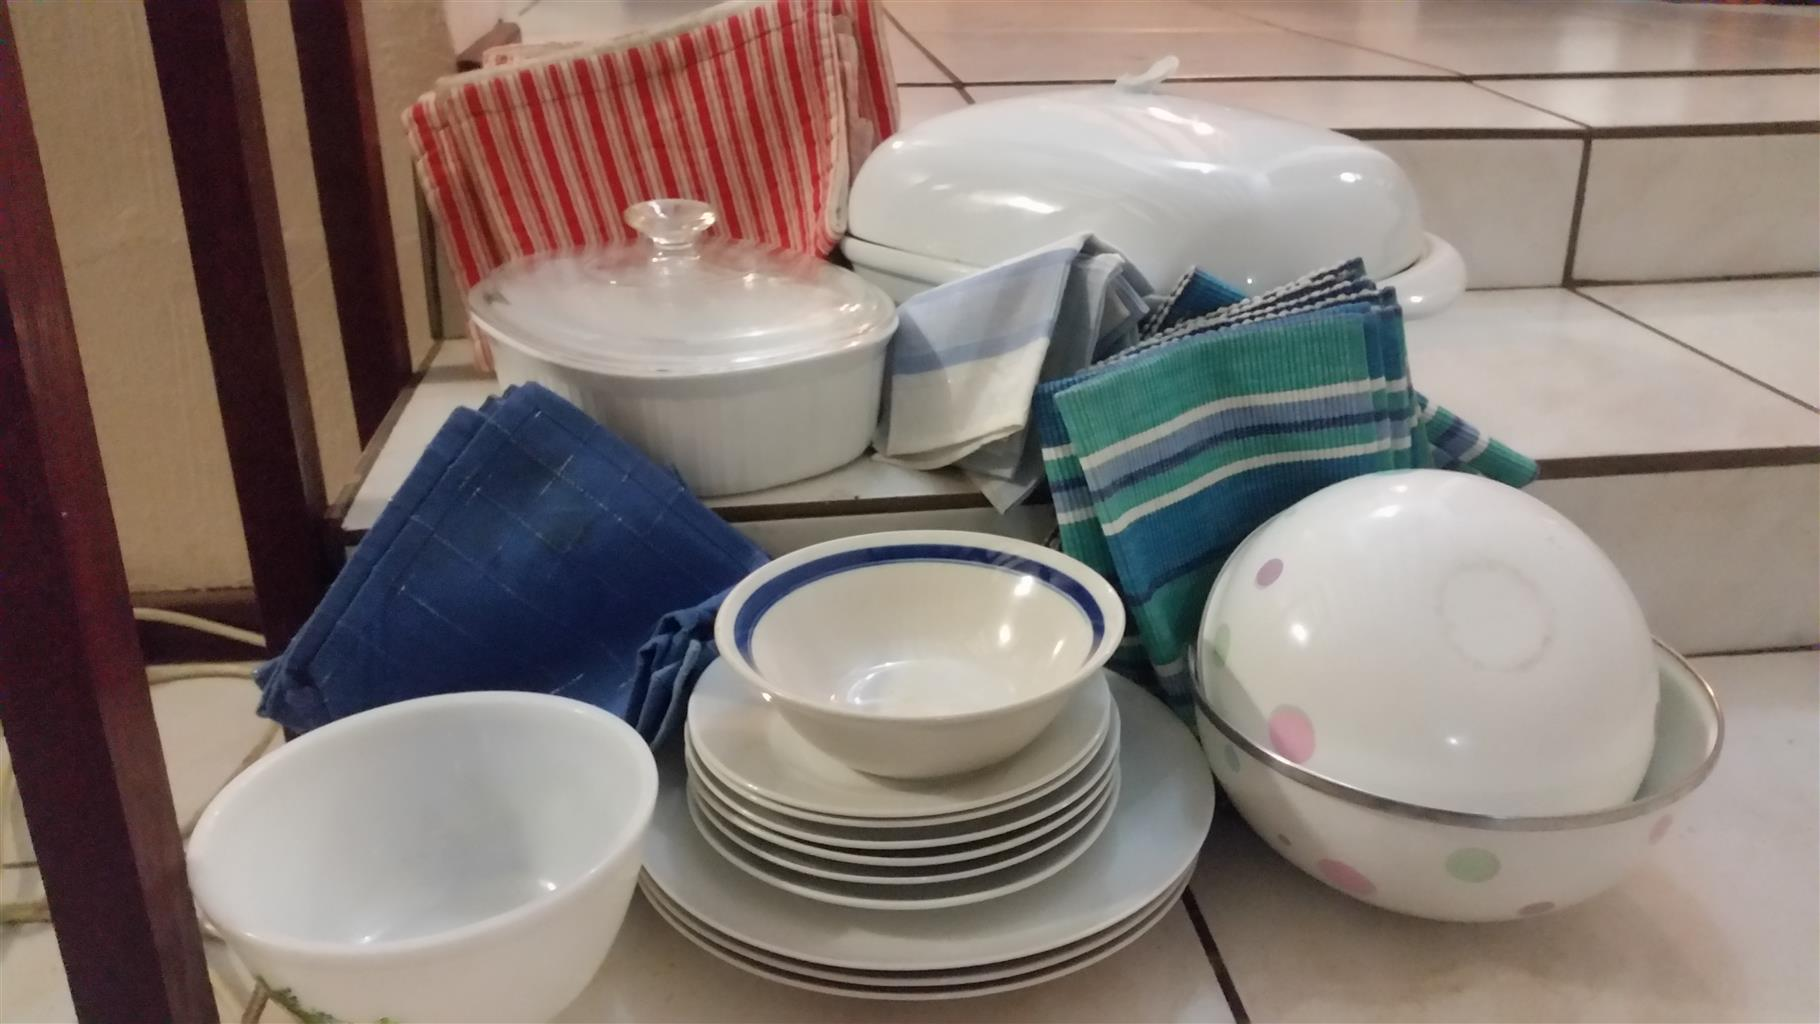 Oven Casserole dishes, plates - plus....